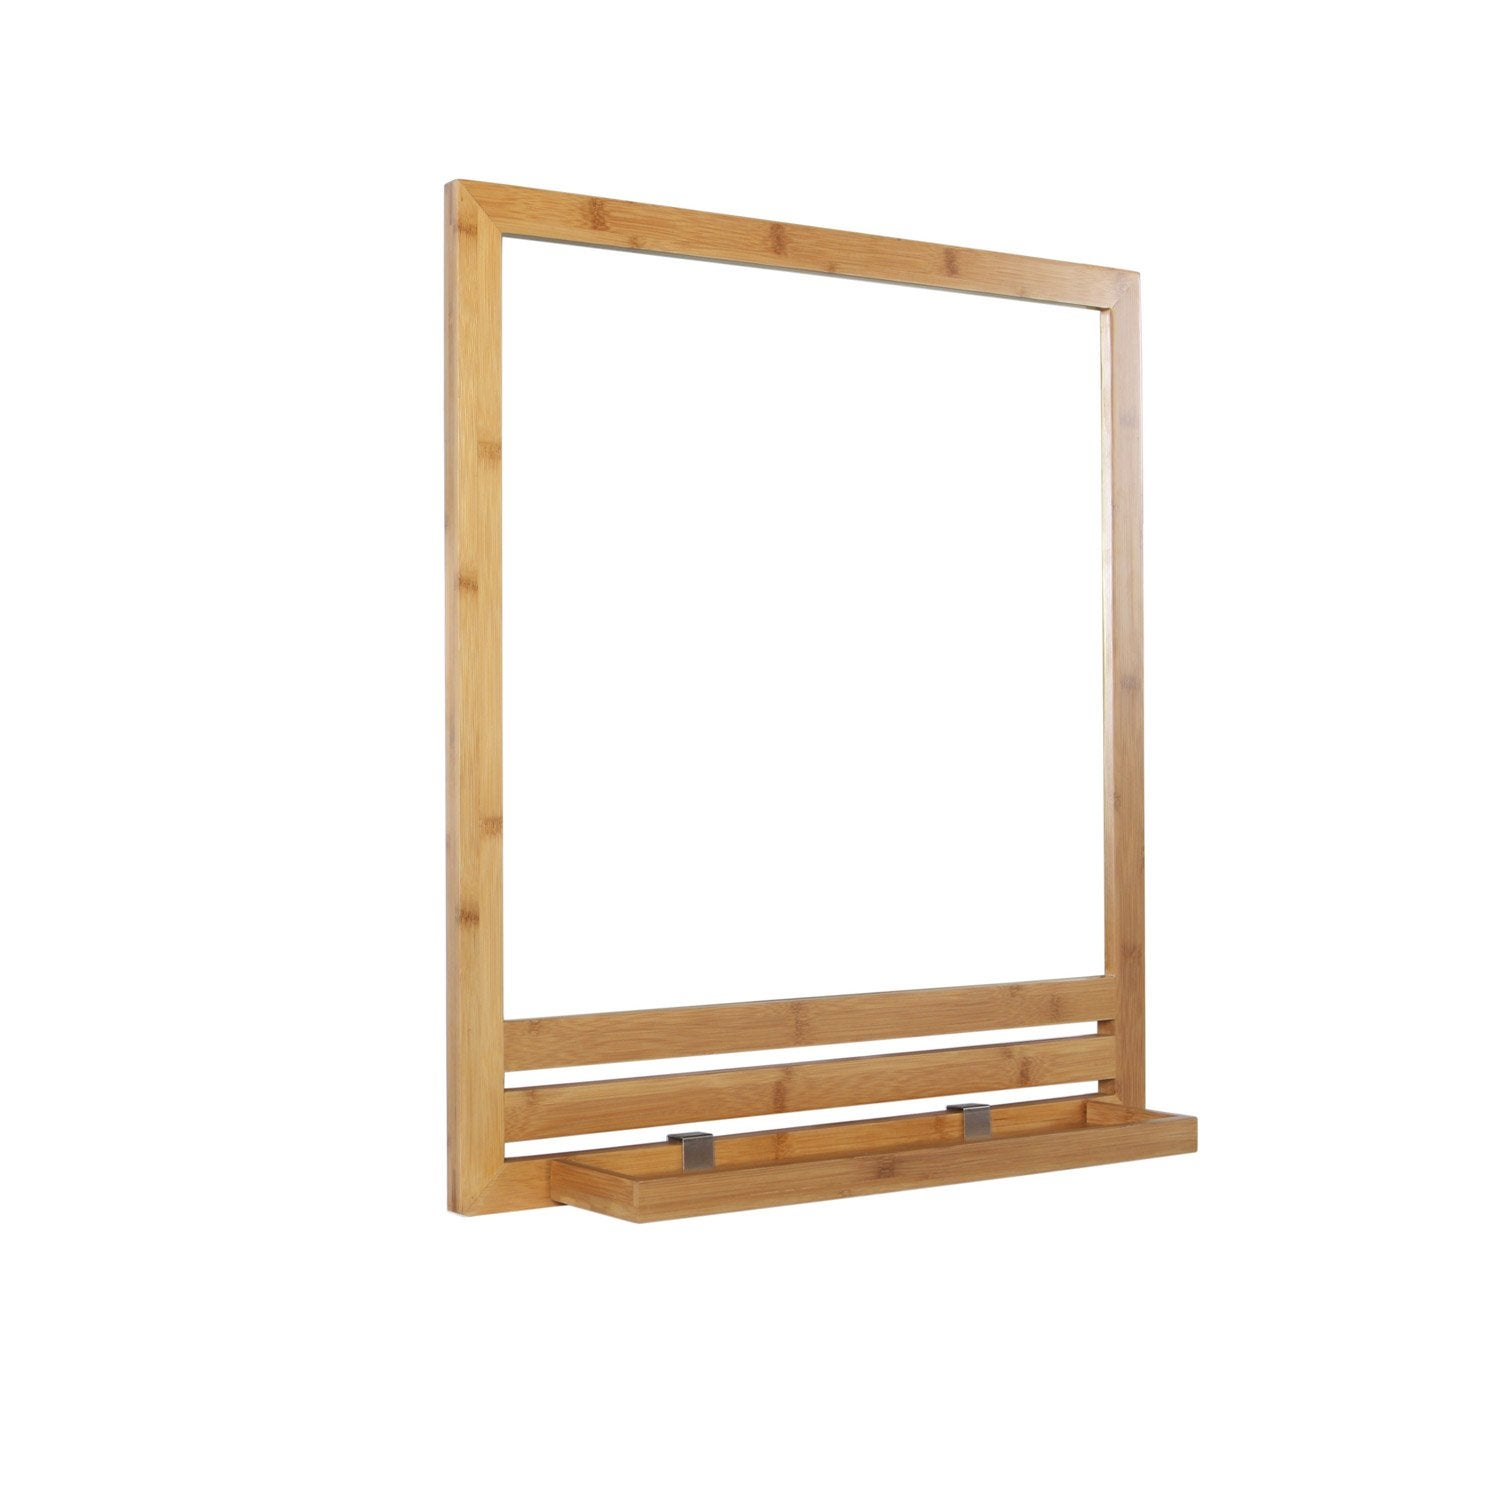 Miroir avec tablette bambou l 53 0 cm natural leroy merlin for Grand miroir leroy merlin